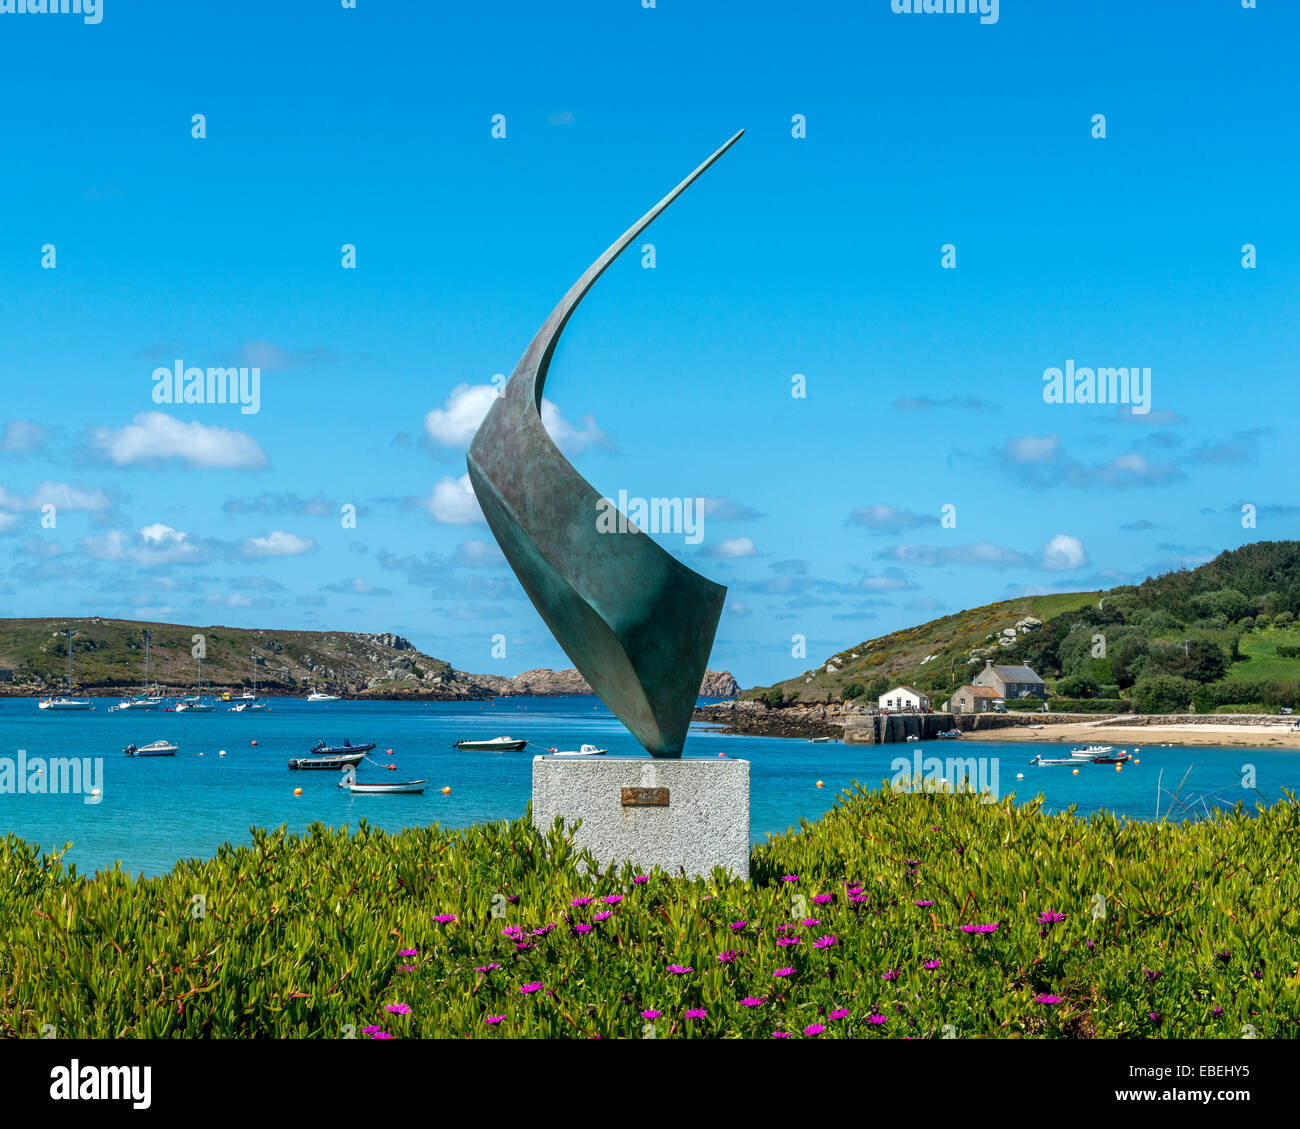 The Flying Boat Club. New Grimsby. Tresco. Isles of Scilly. Cornwall. UK - Stock Image